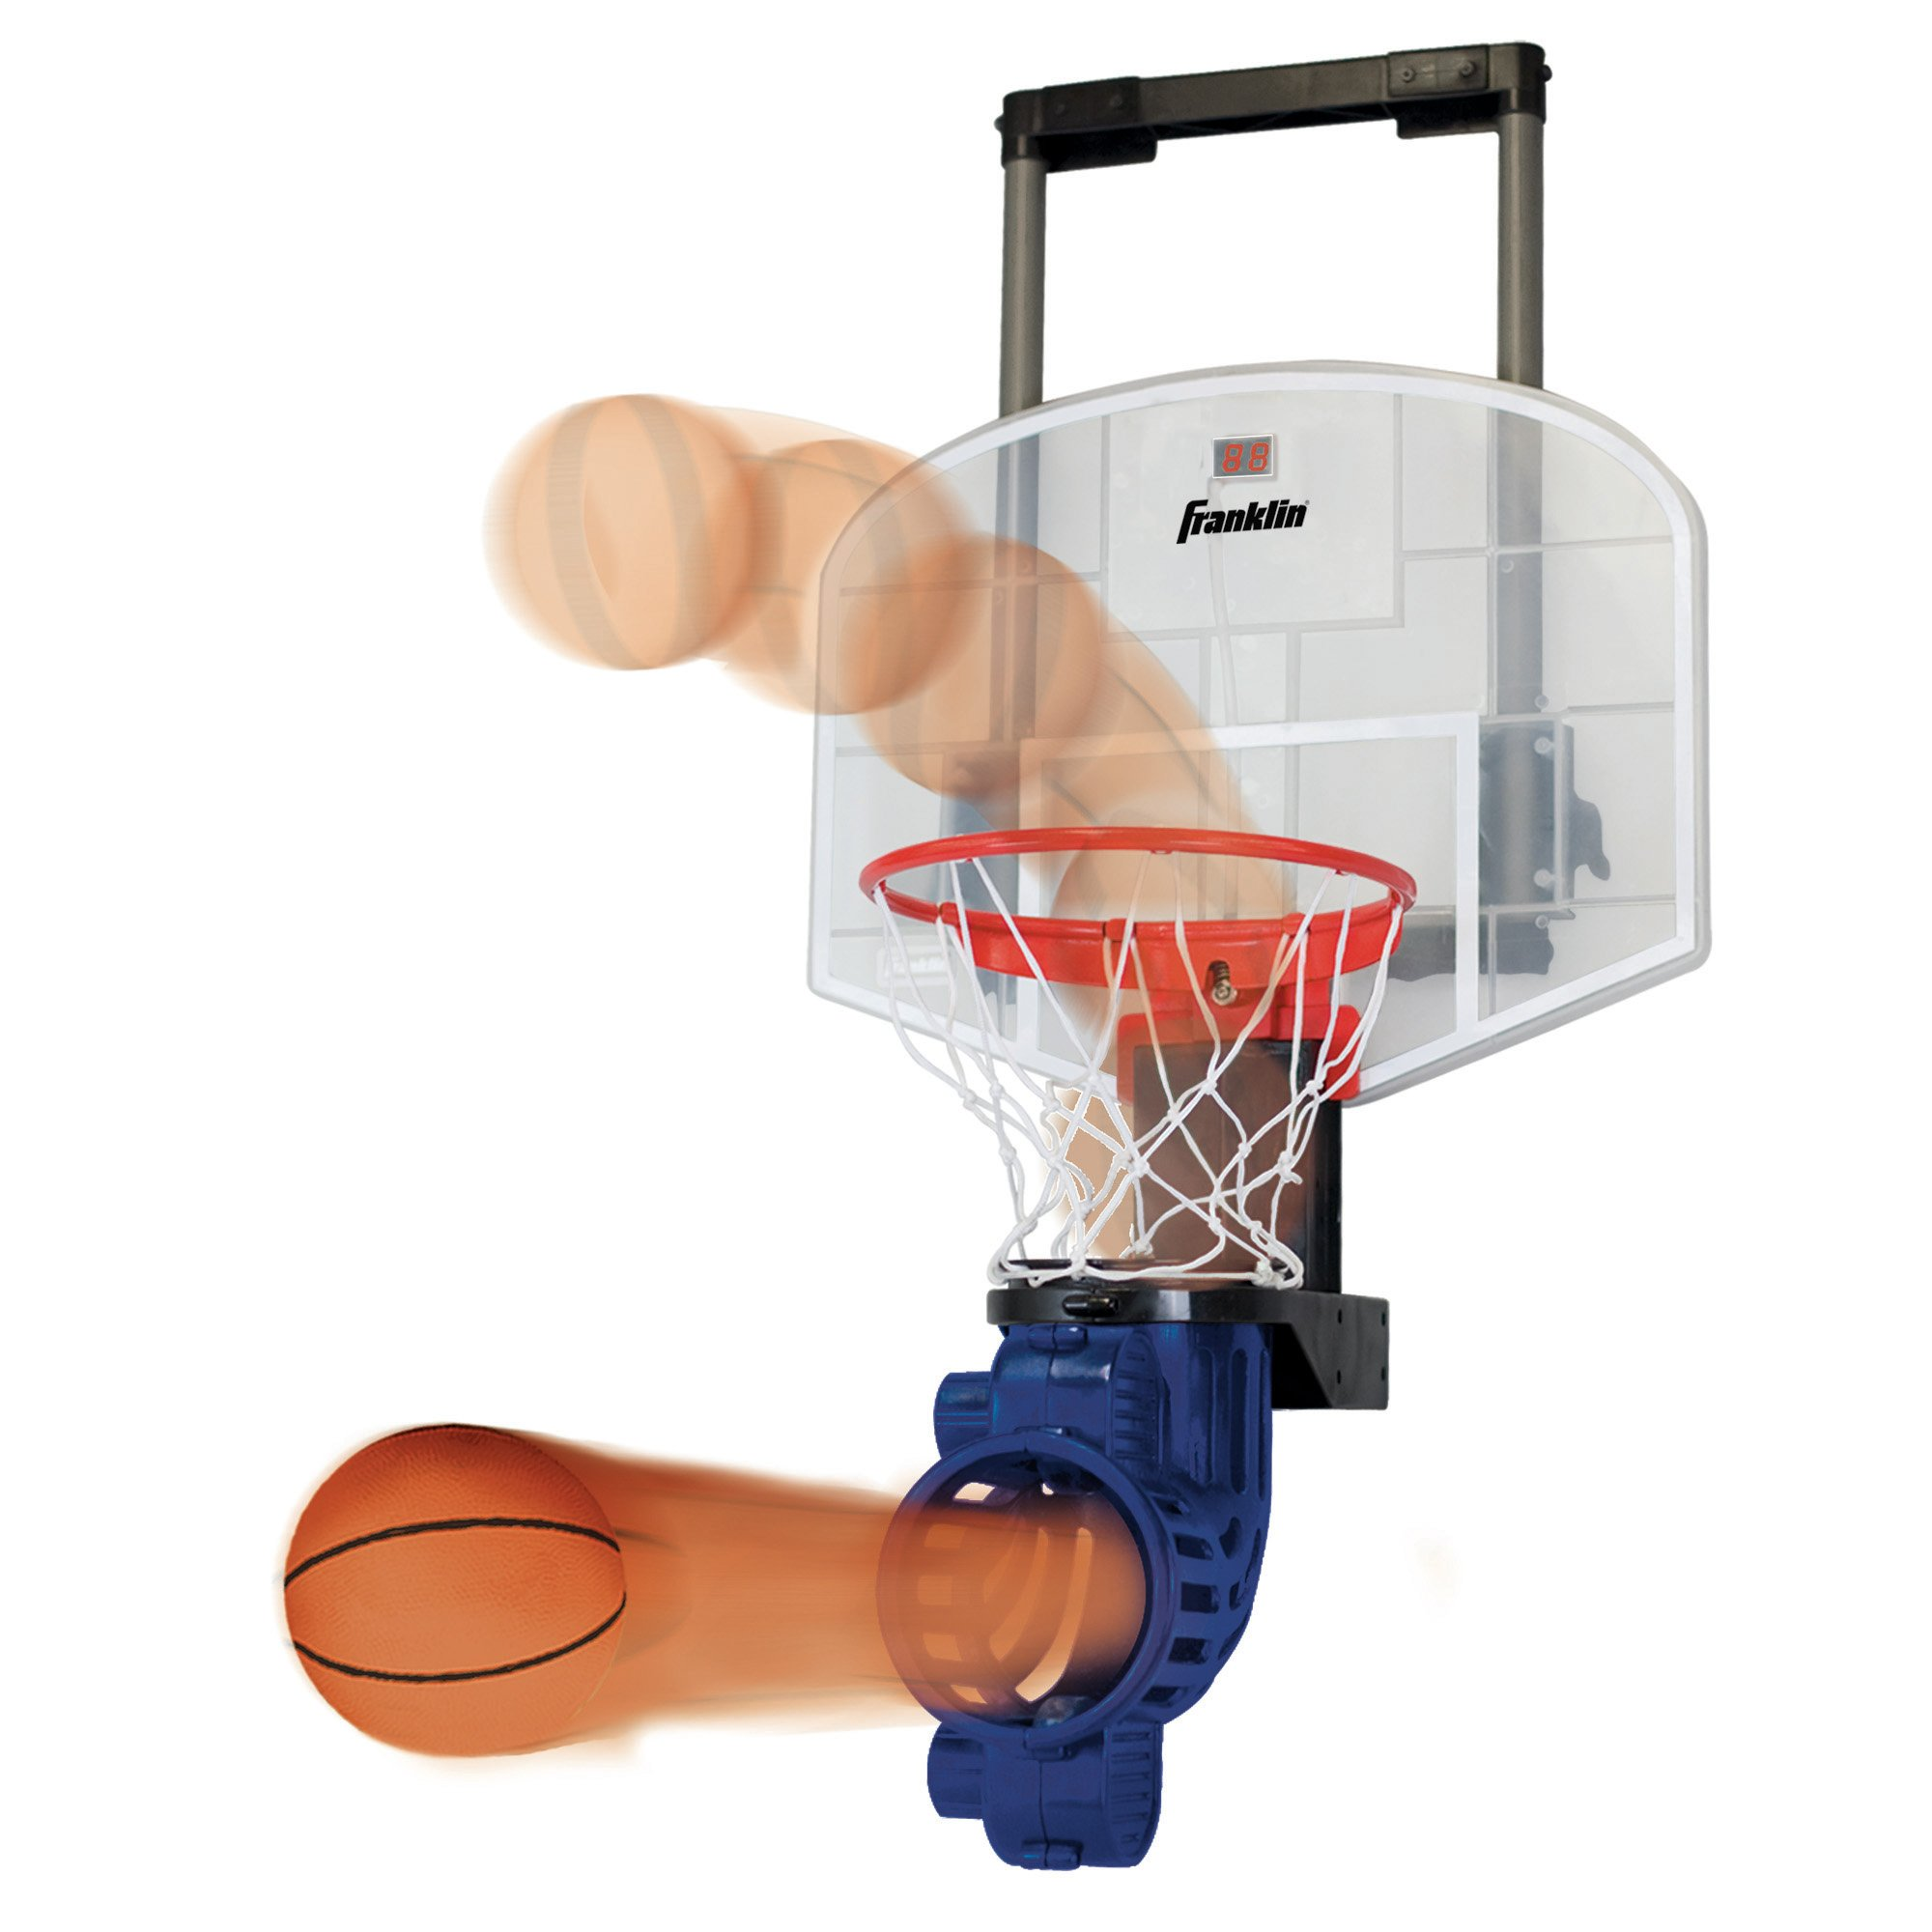 Franklin Sports Mini Basketball Hoop with Rebounder and Ball - Over The Door Basketball Hoop With Automatic Ball Rebounder - Indoor Basketball Game For Kids - Includes Foam Basketball by Franklin Sports